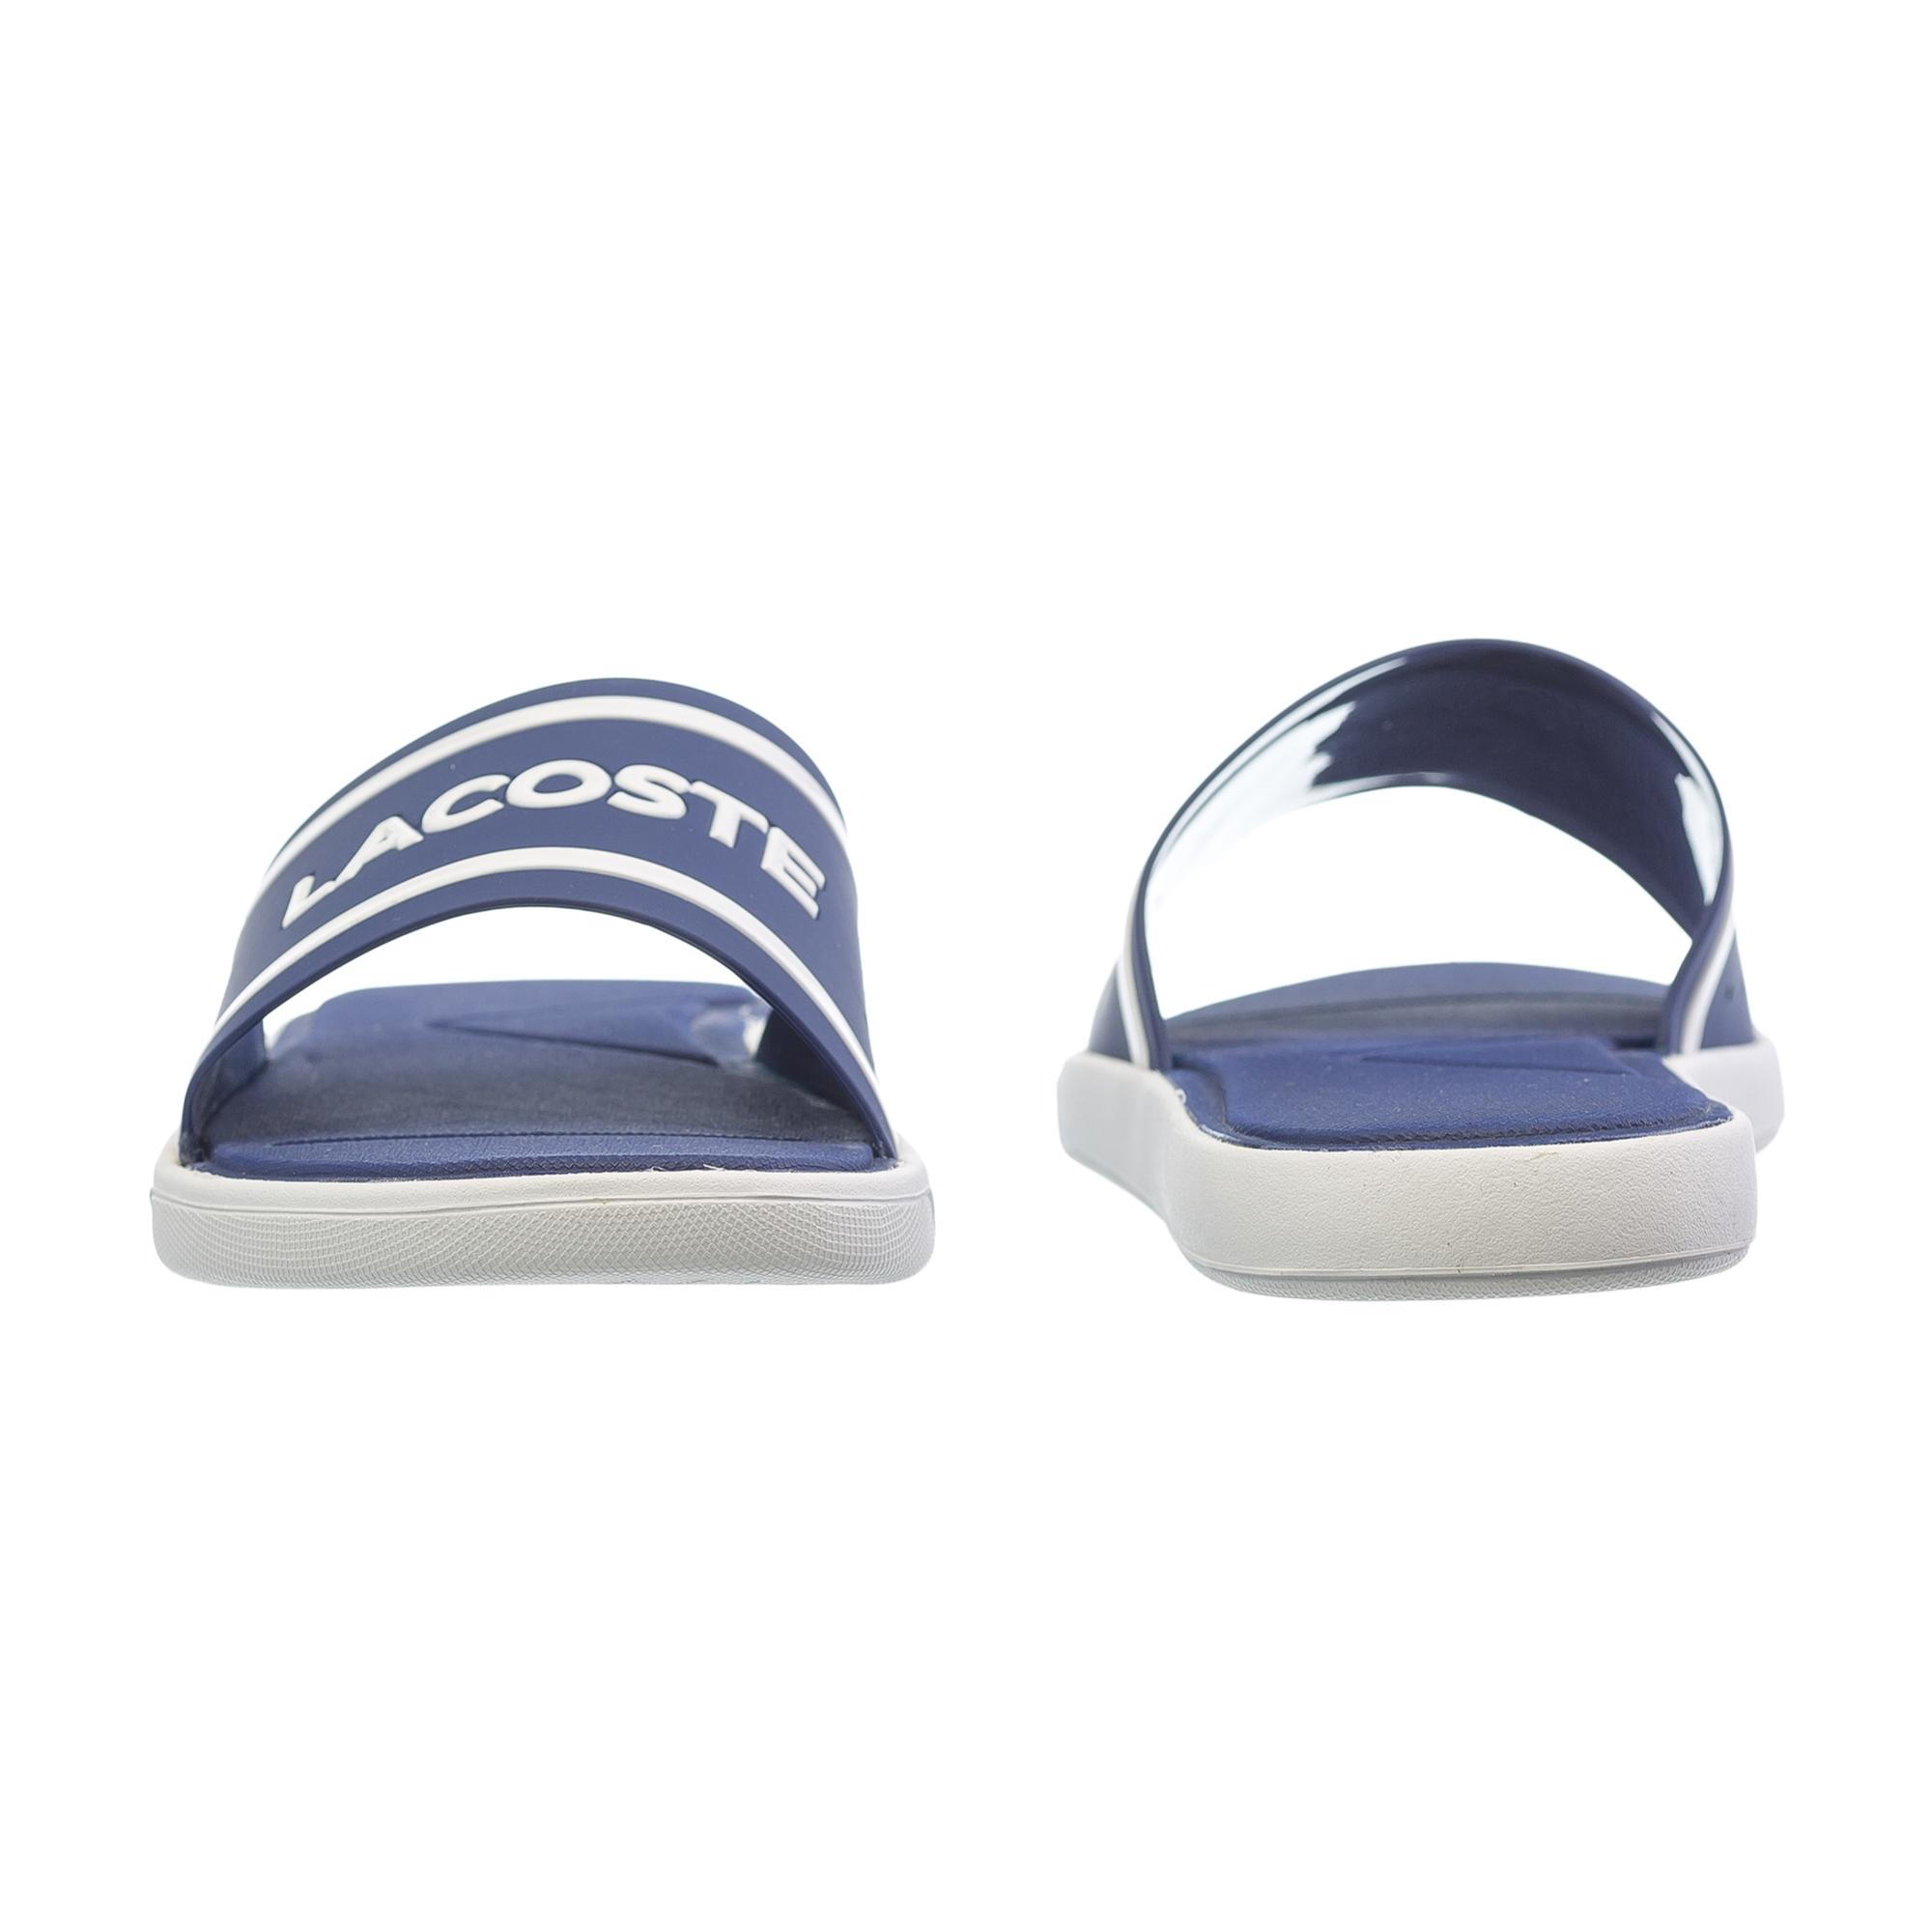 Lacoste Women's L.30 Slide Slippers